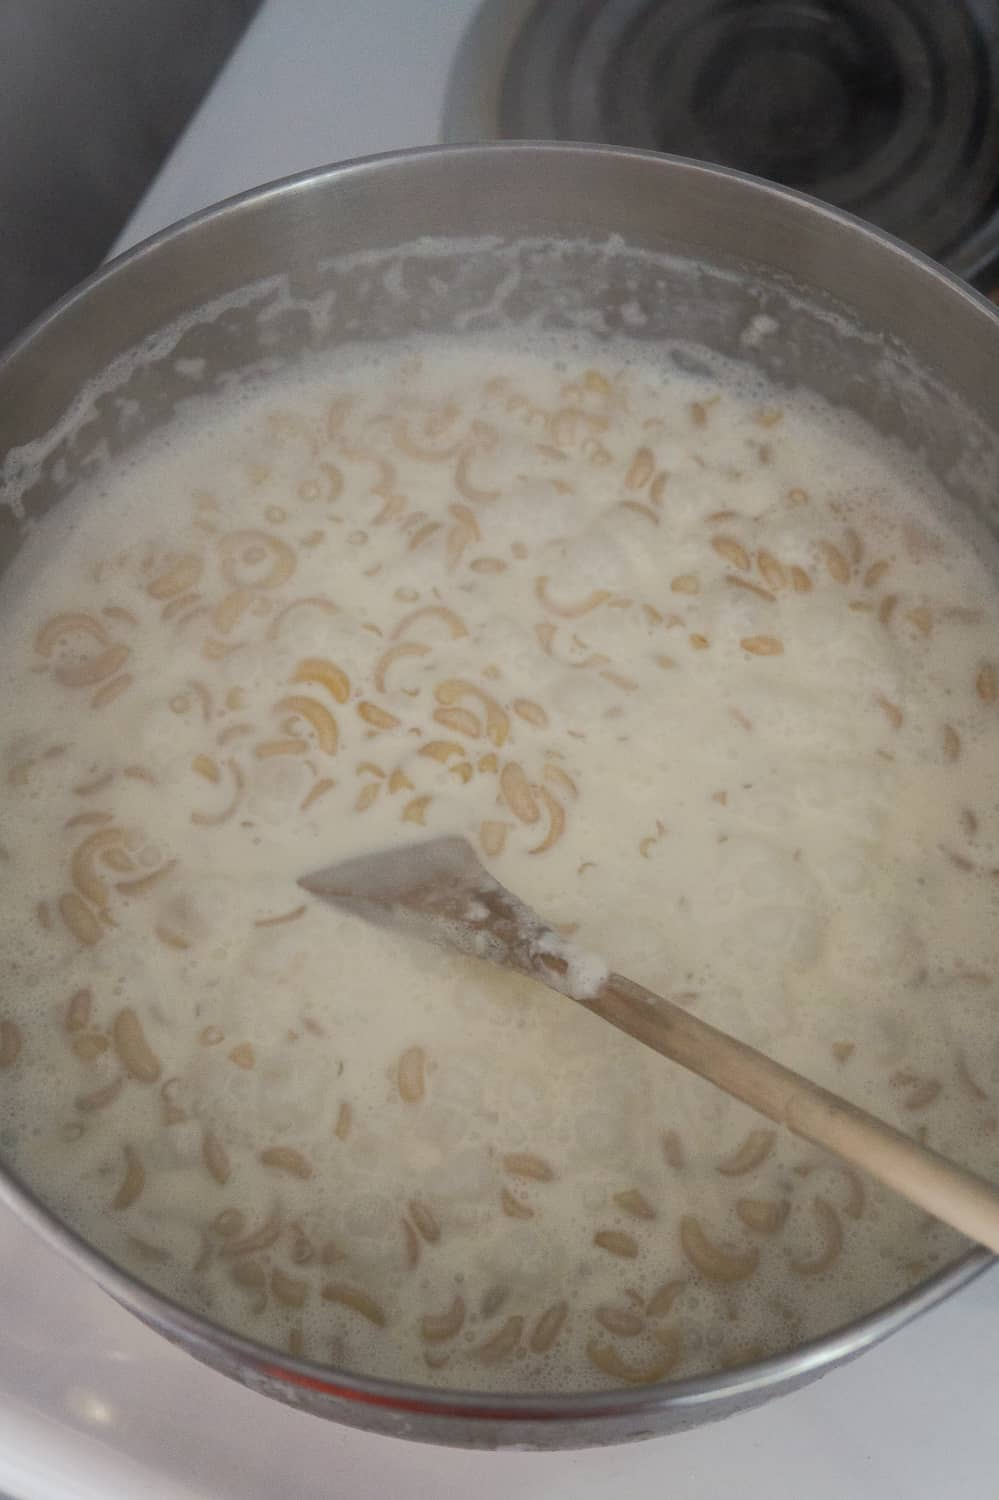 macaroni noodles and heavy cream in a saucepan